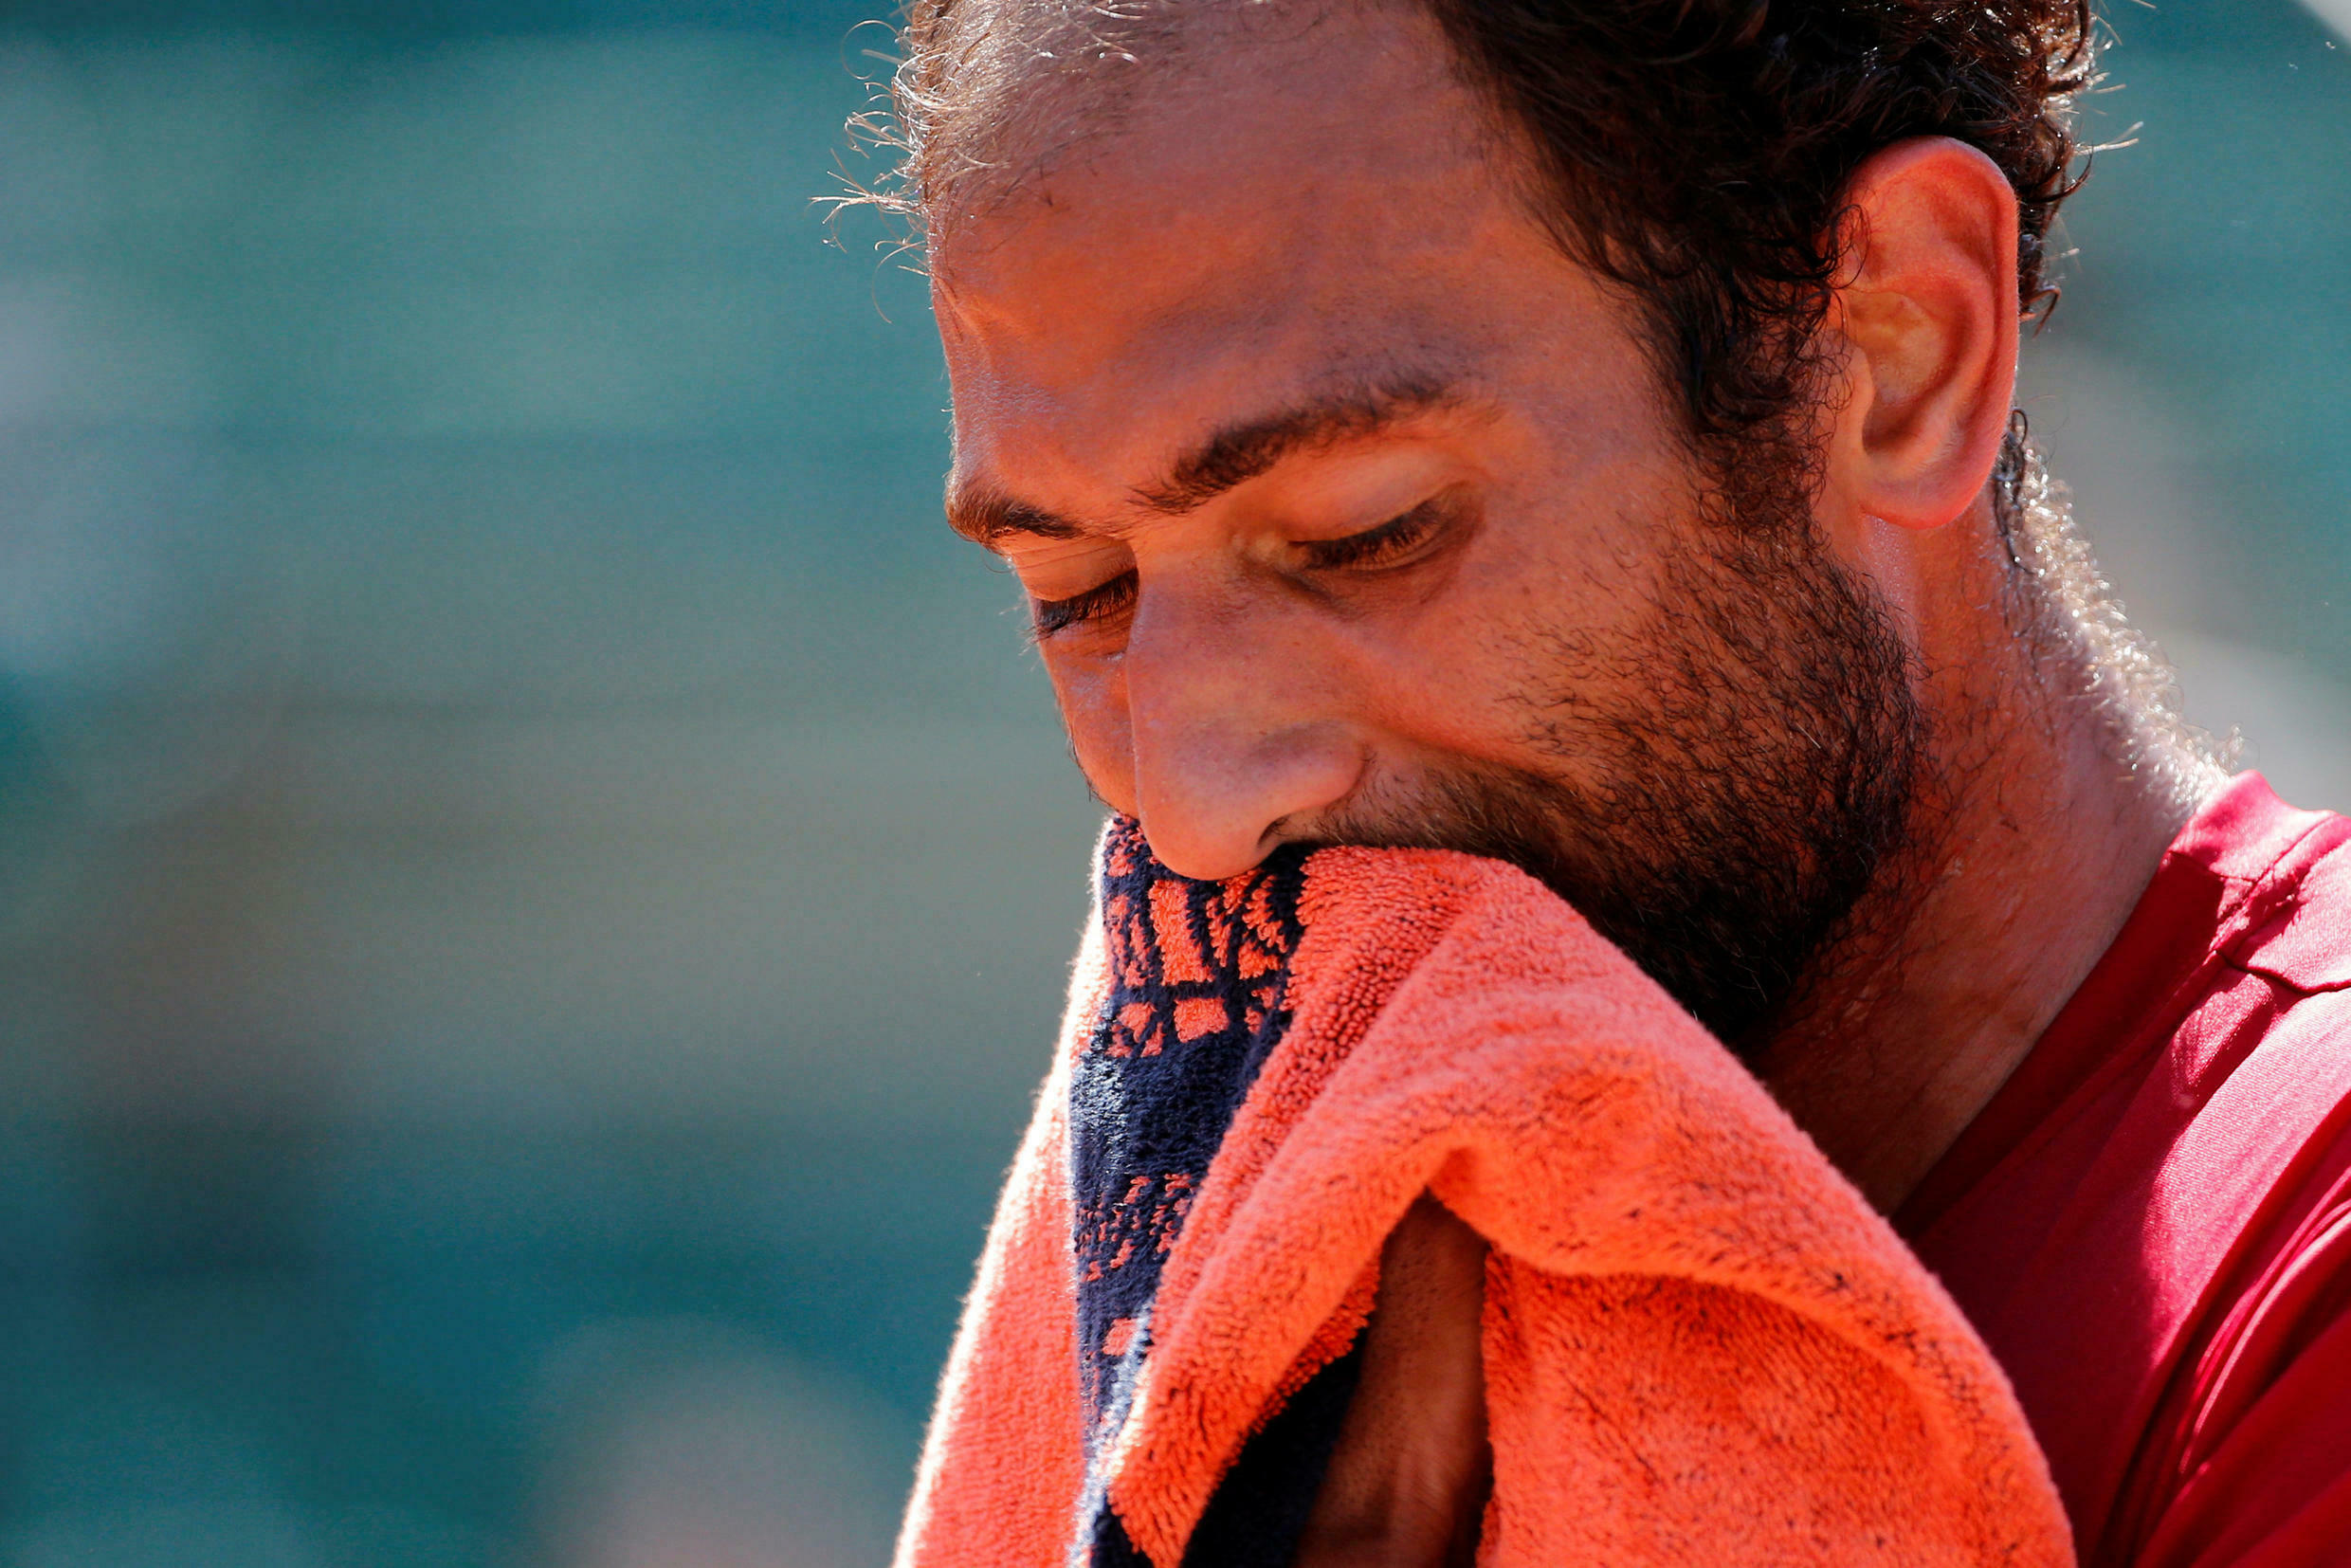 Mohamed Safwat had never played in the main draw of a Grand Slam tournament.